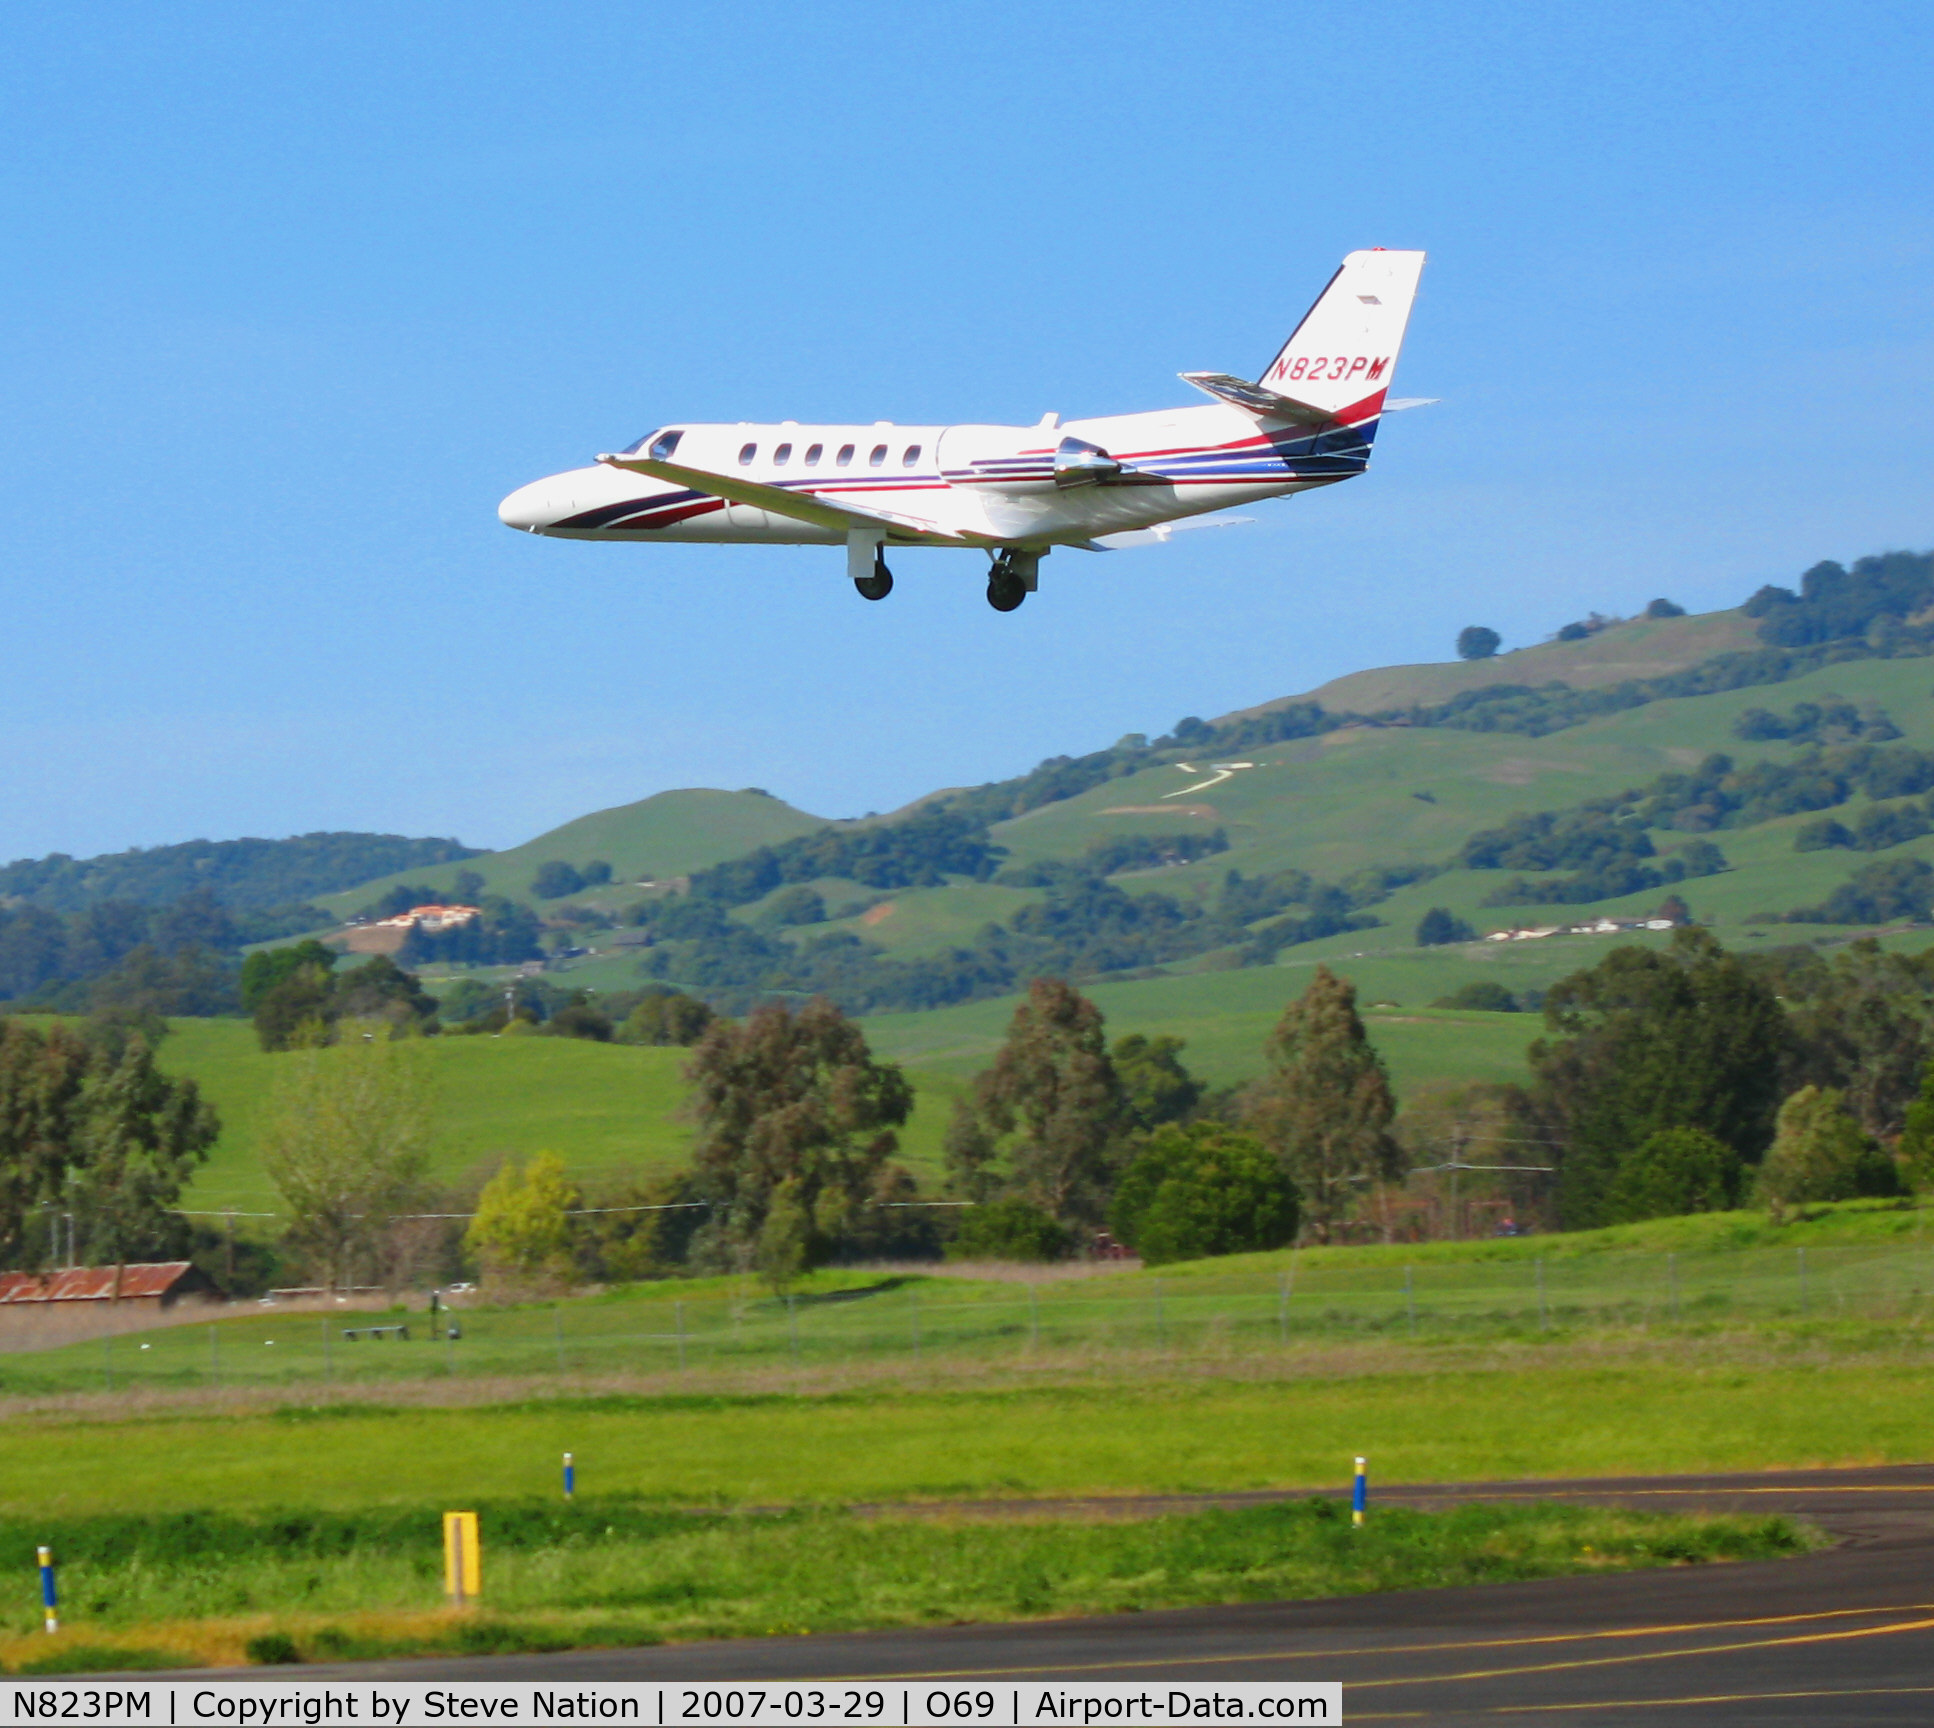 N823PM, 2003 Cessna 550 C/N 550-1064, TBN Group 2003 Cessna 550 gear-up and leaving @ Petaluma, CA